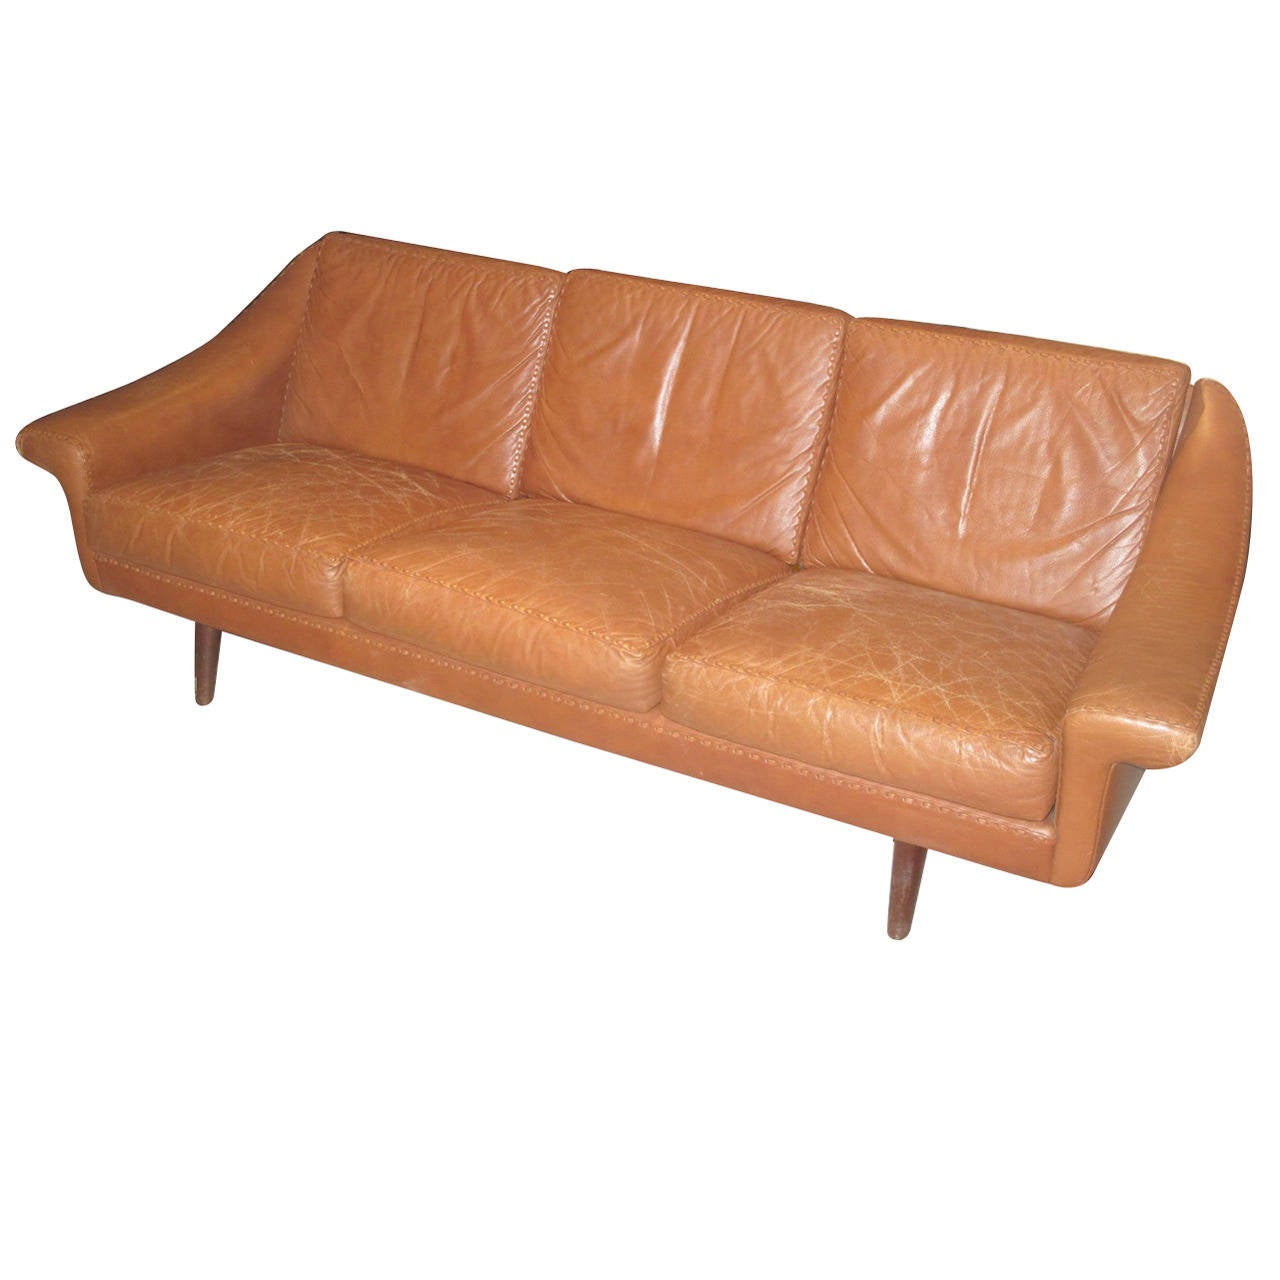 Danish Modern Sofas: Danish Modern Leather Sofa With Stitching Detail At 1stdibs